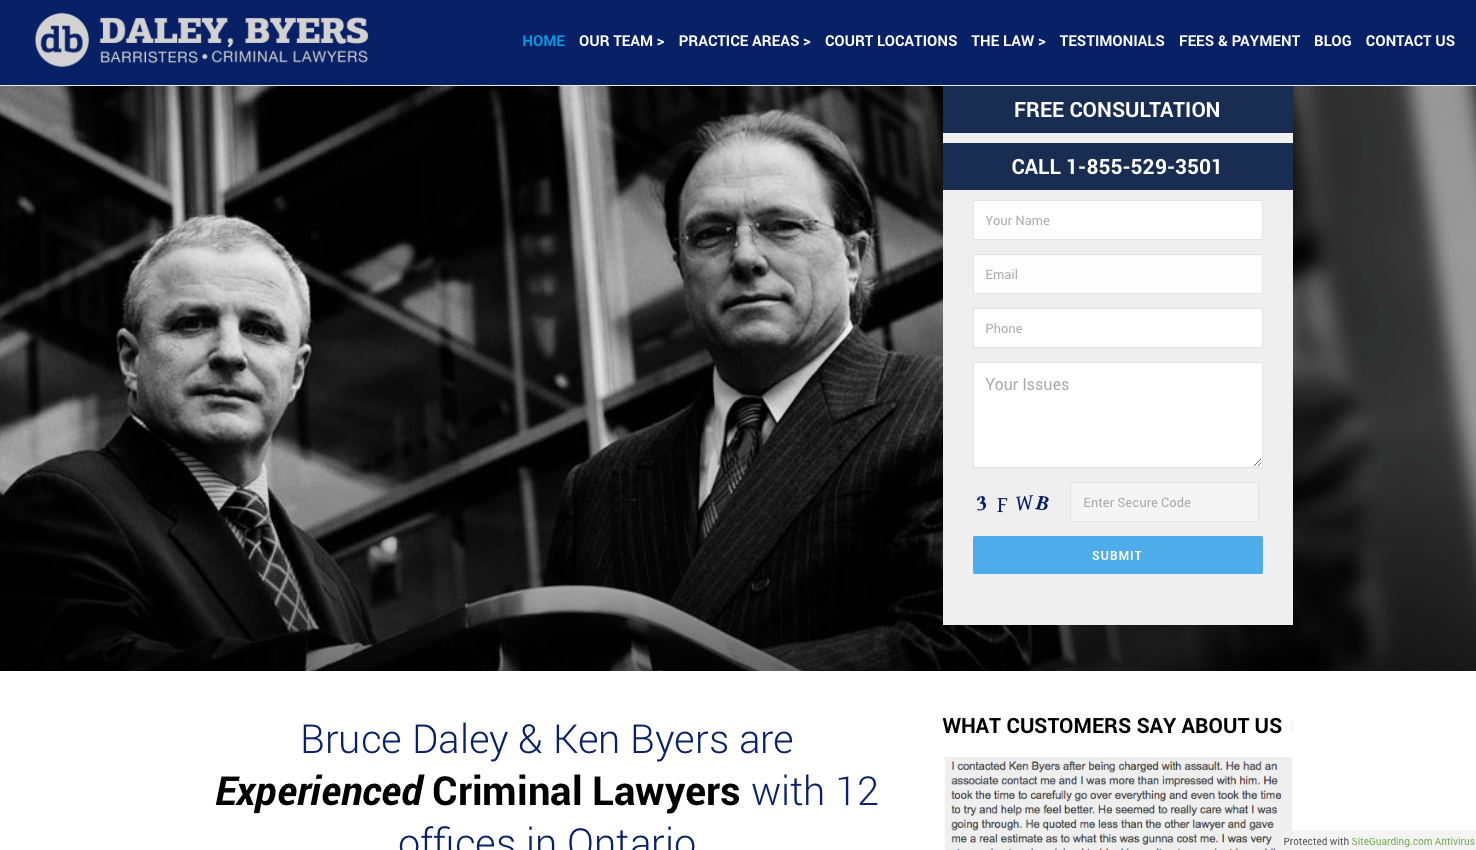 Website creation for criminal law firm